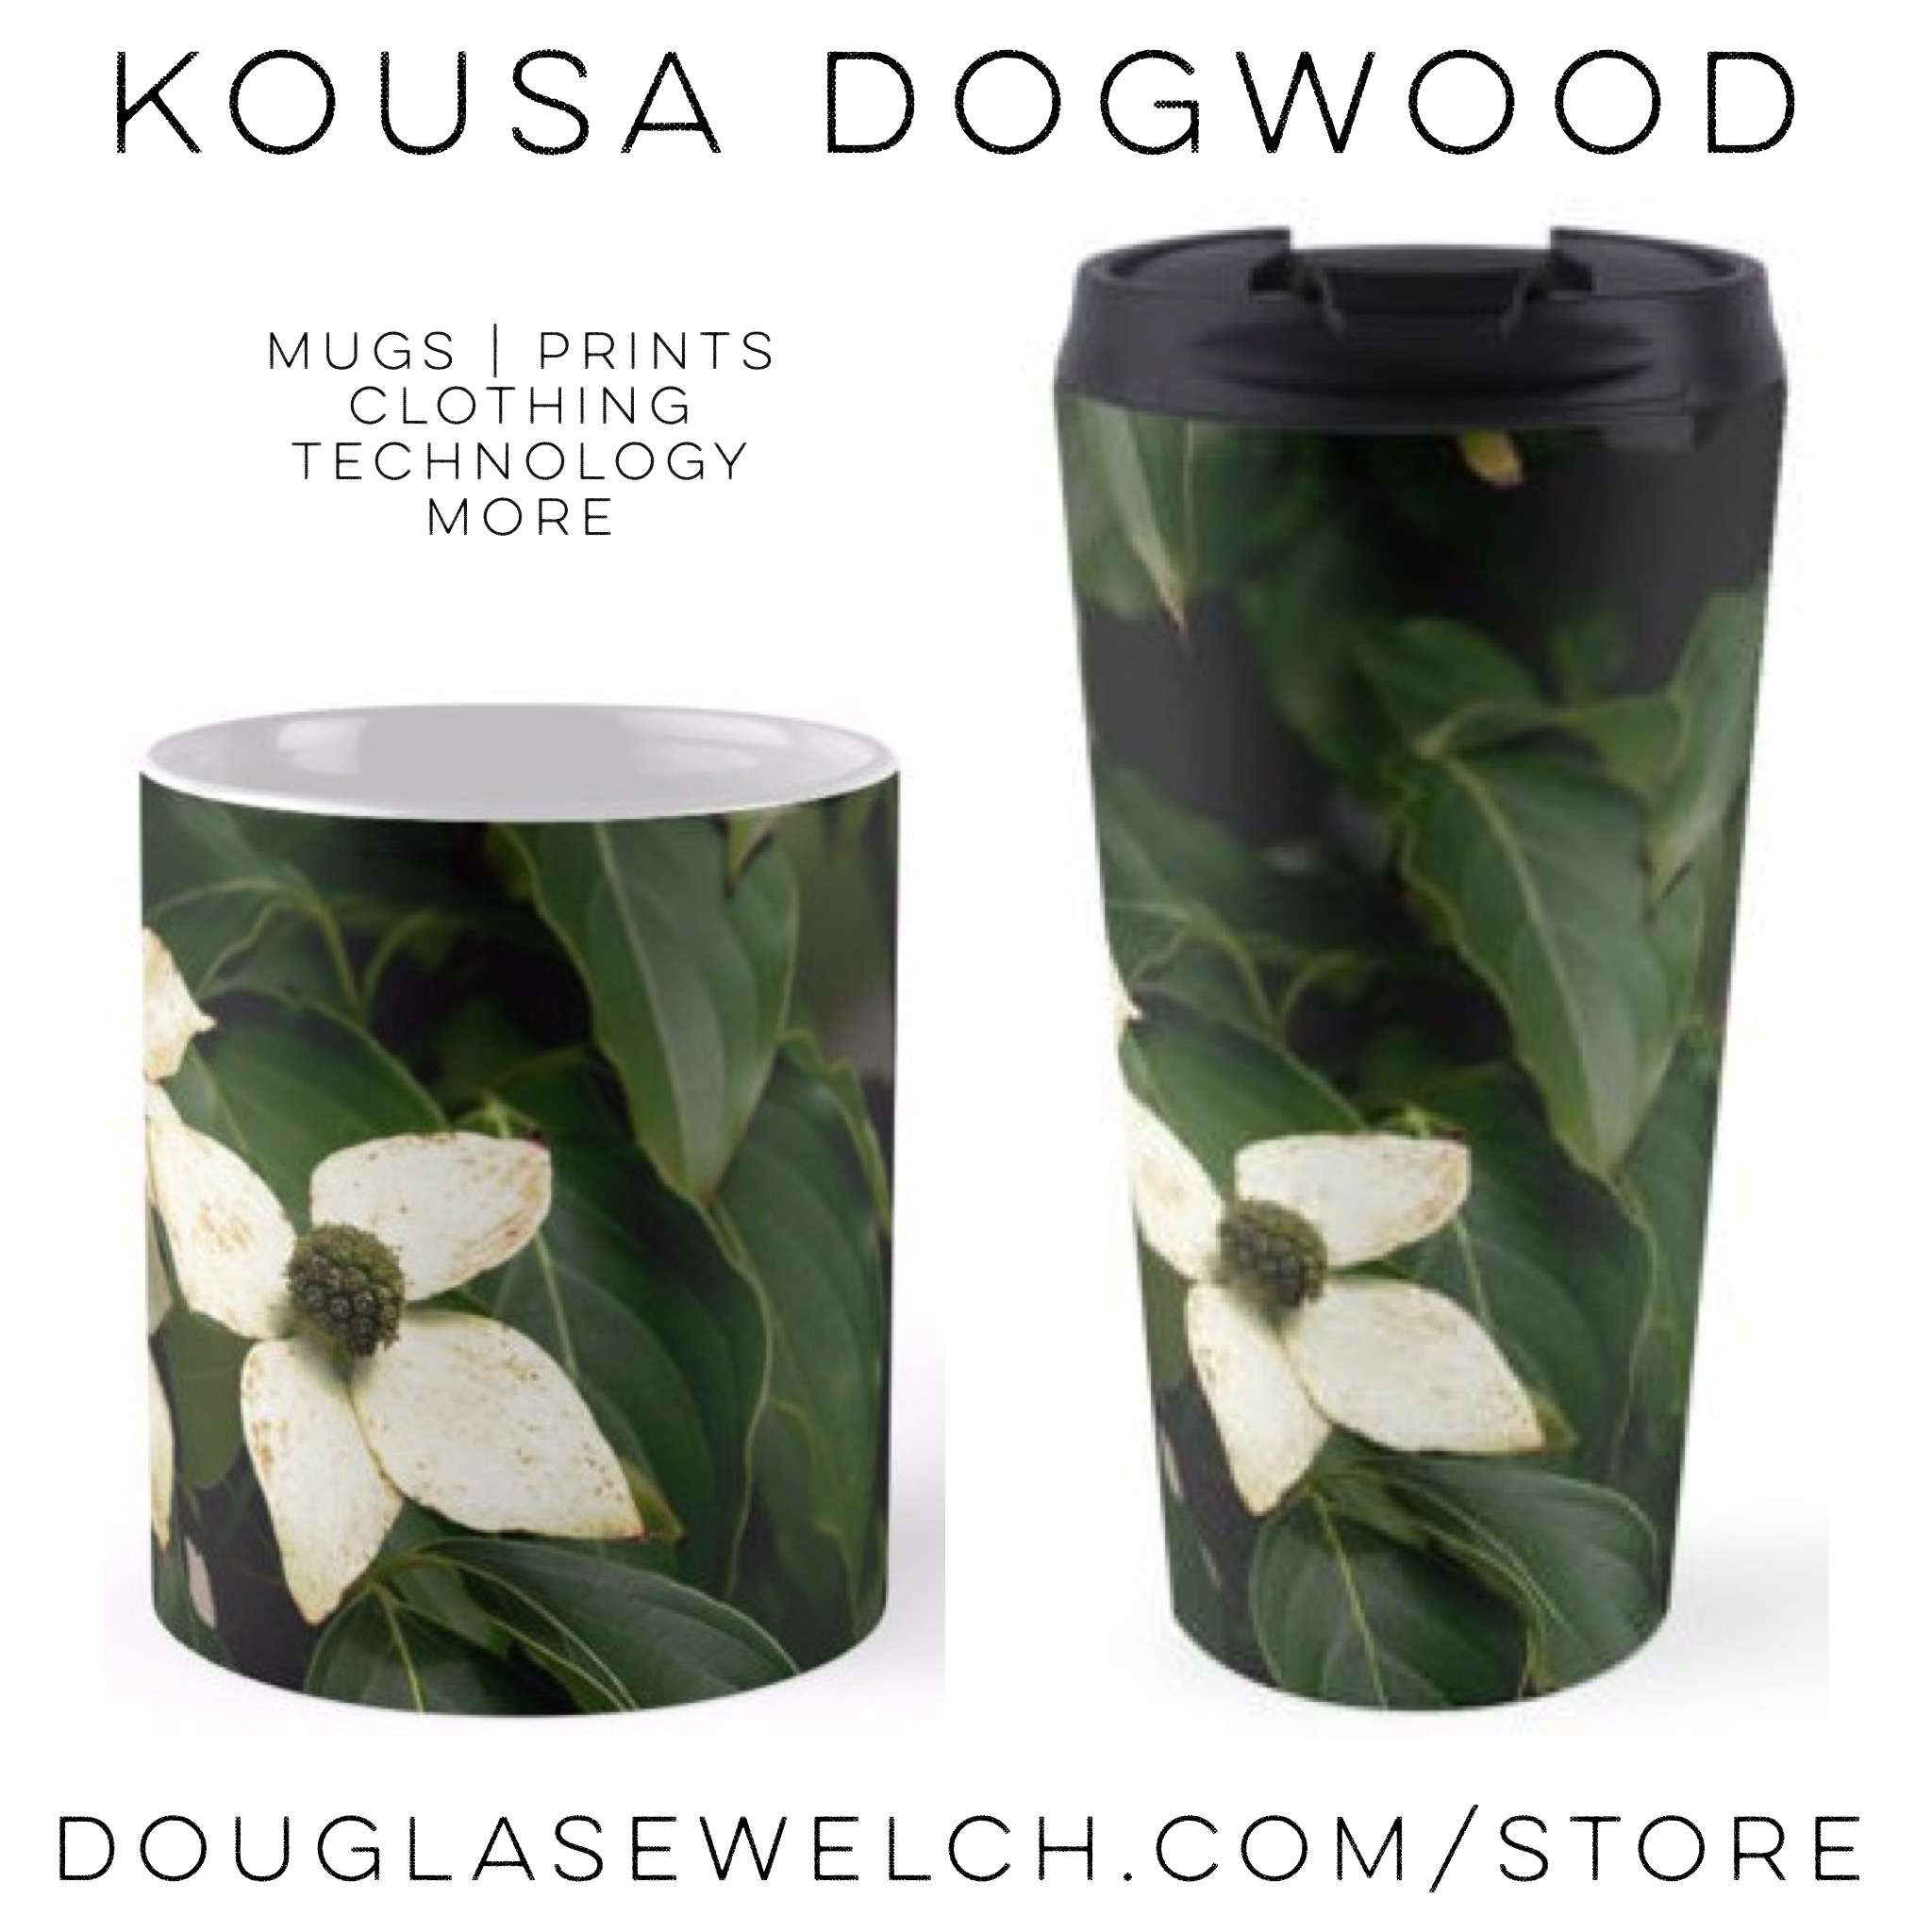 Get these Kousa Dogwood Mugs and Much More! Exclusively from Douglas E. Welch